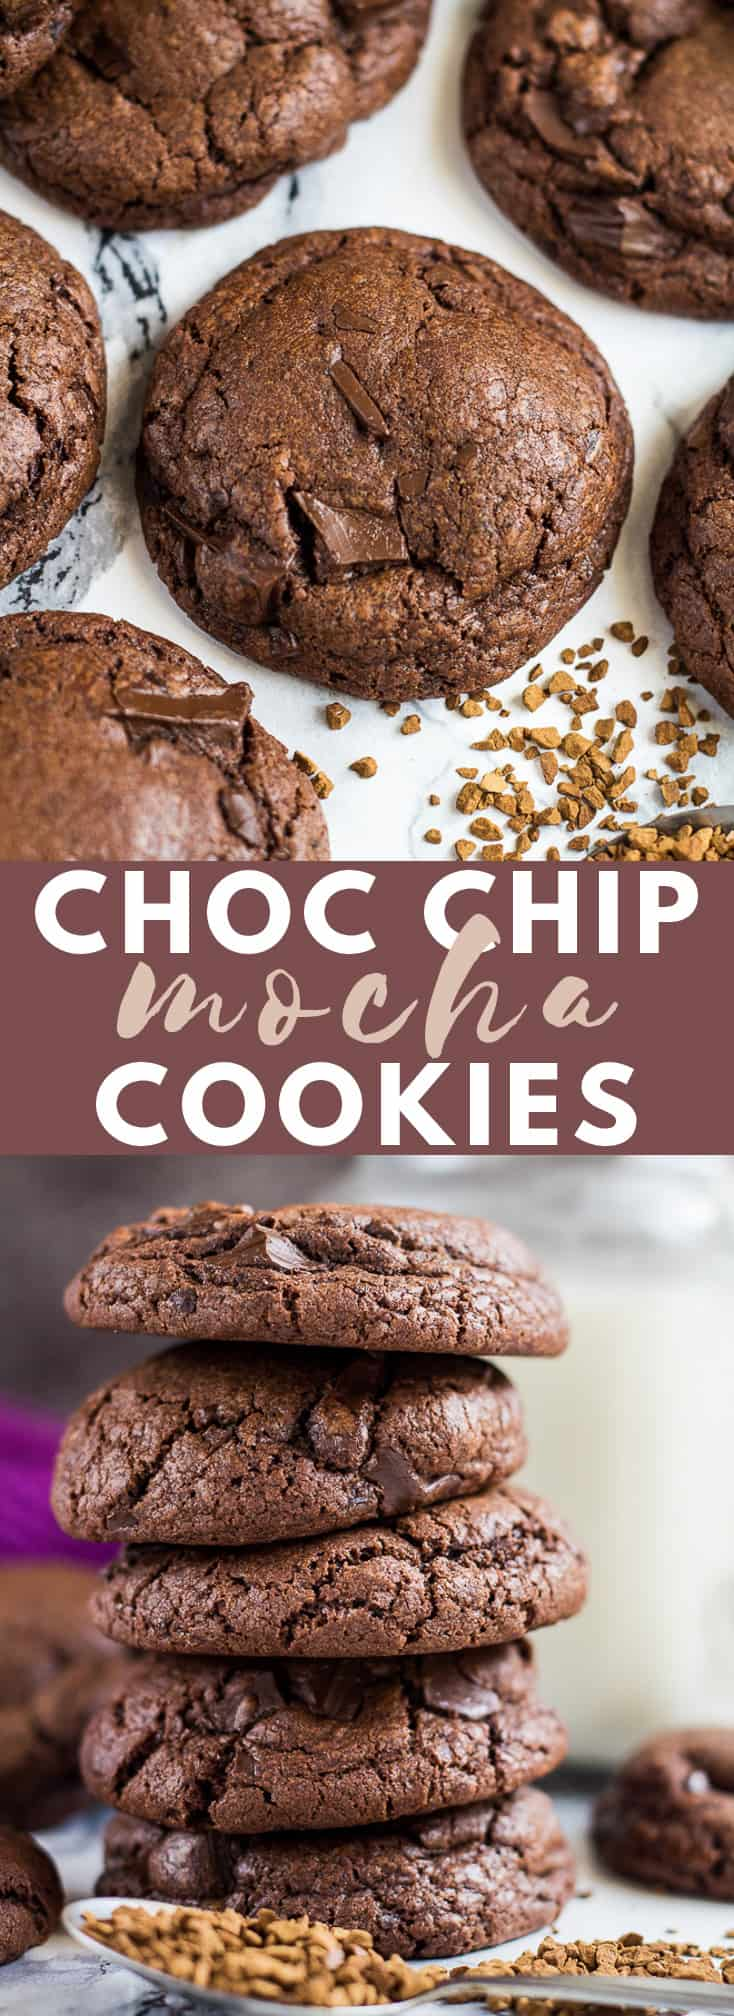 Chocolate Chip Mocha Cookies - Deliciously soft, thick, and chewy chocolate cookies infused with coffee and studded with chocolate chunks. No chilling required! #chocolatechipcookies #mocha #chocolatecookies #cookierecipes